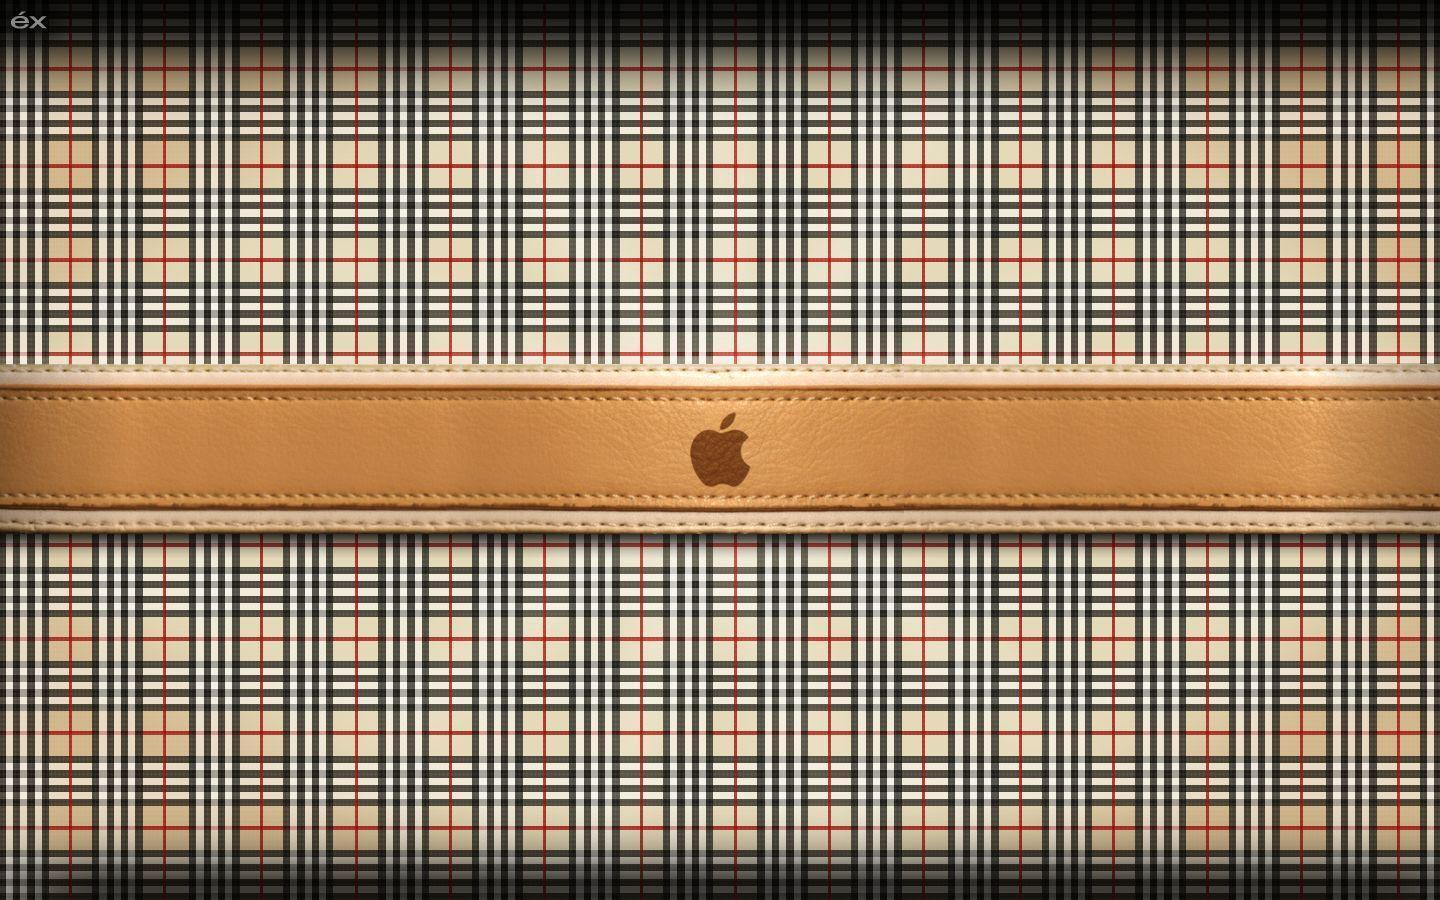 Burberry Muster Burberry Wallpapers - Wallpaper Cave